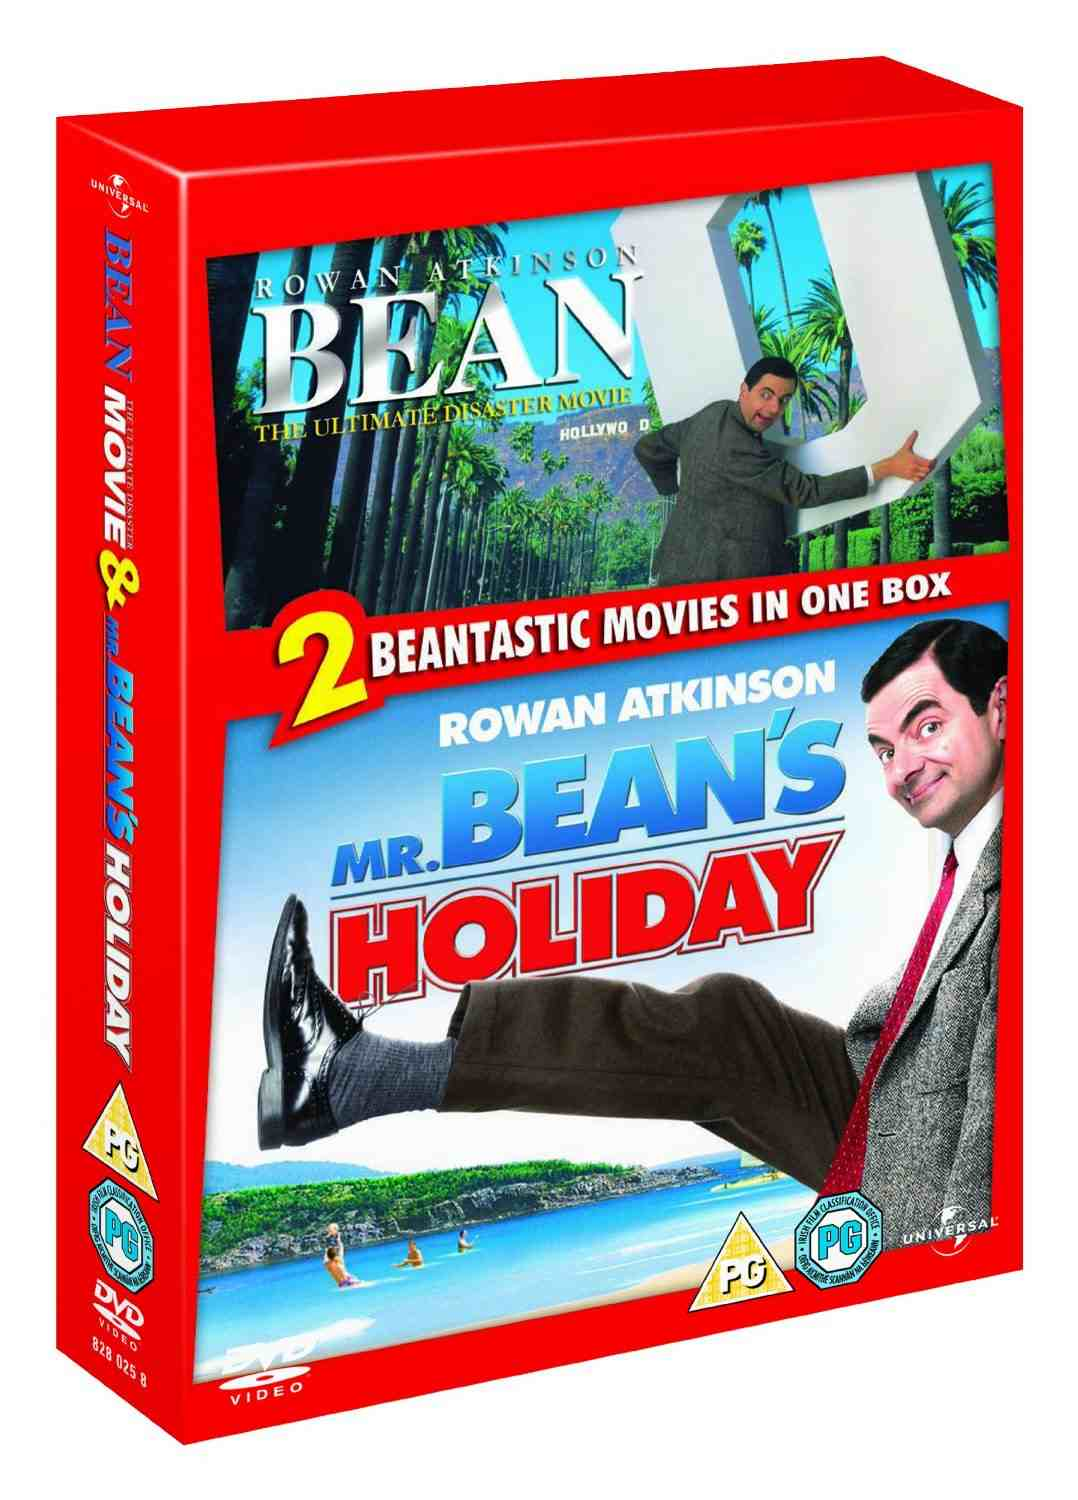 Mr Beans Movie Box Set The Ultimate Disaster Moviemr Beans